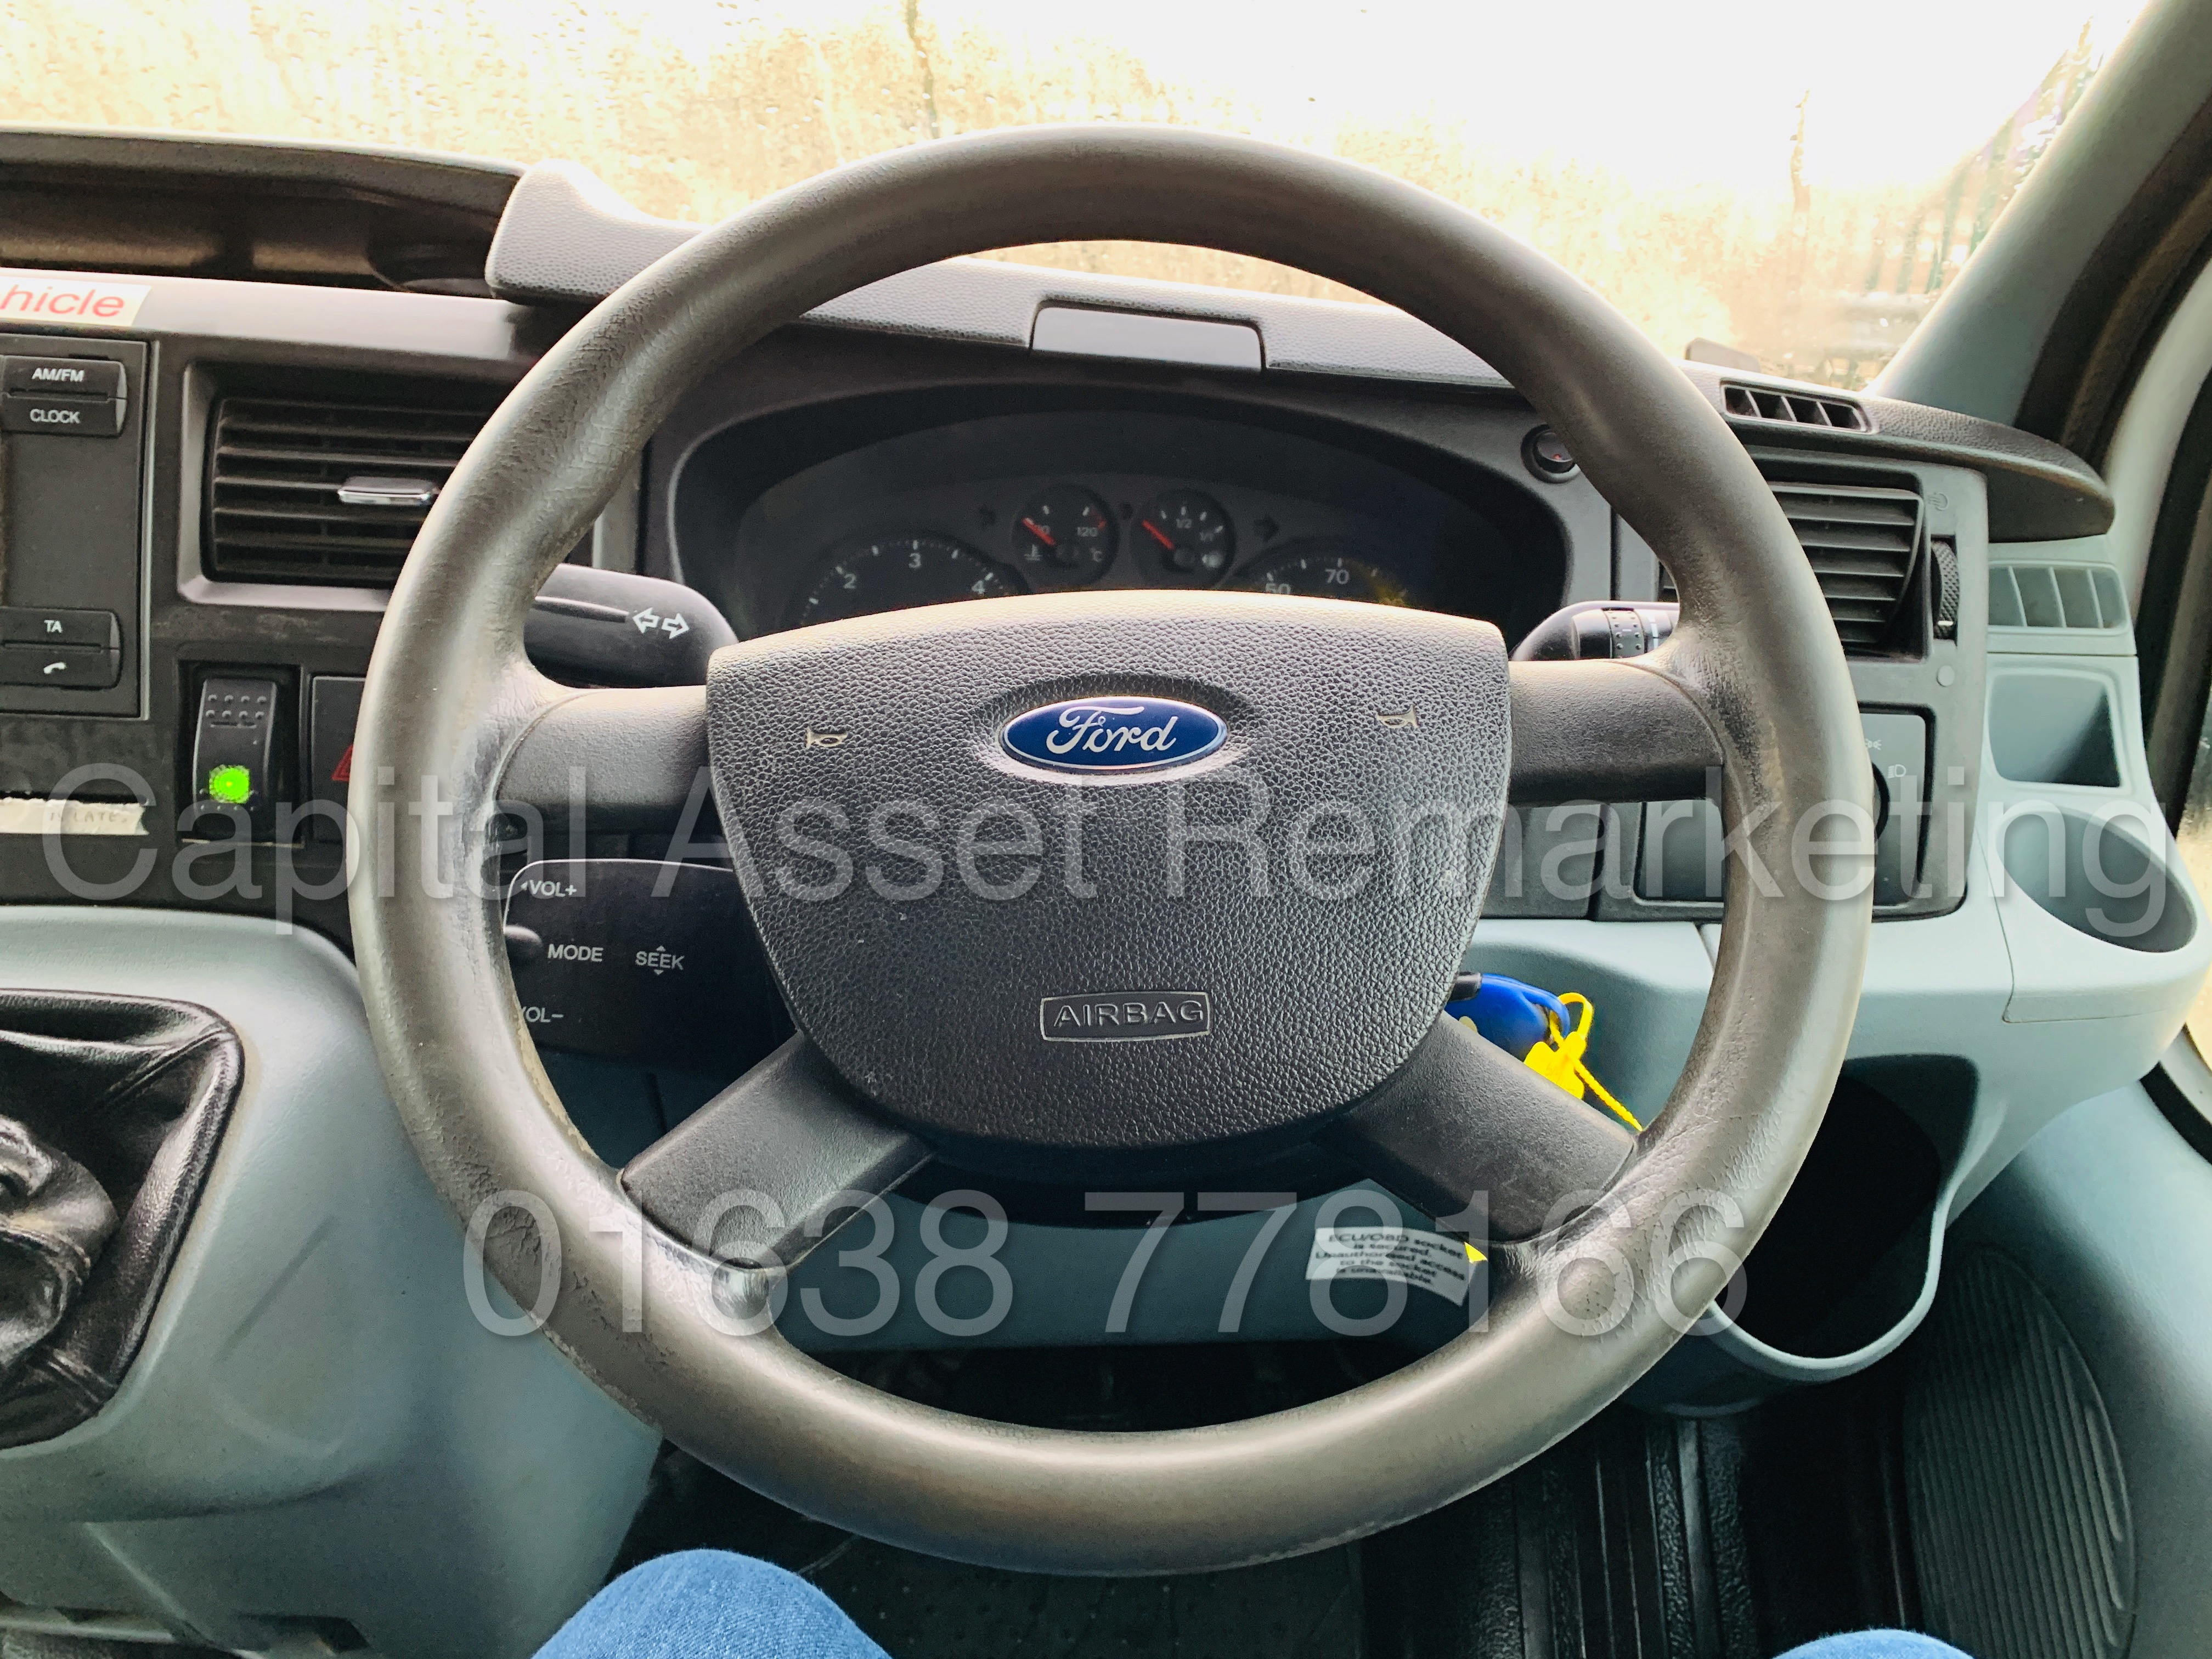 FORD TRANSIT T350 *LWB - 7 SEATER MESSING UNIT* (2014 MODEL) '2.4 TDCI - 6 SPEED' *ON BOARD TOILET* - Image 42 of 44